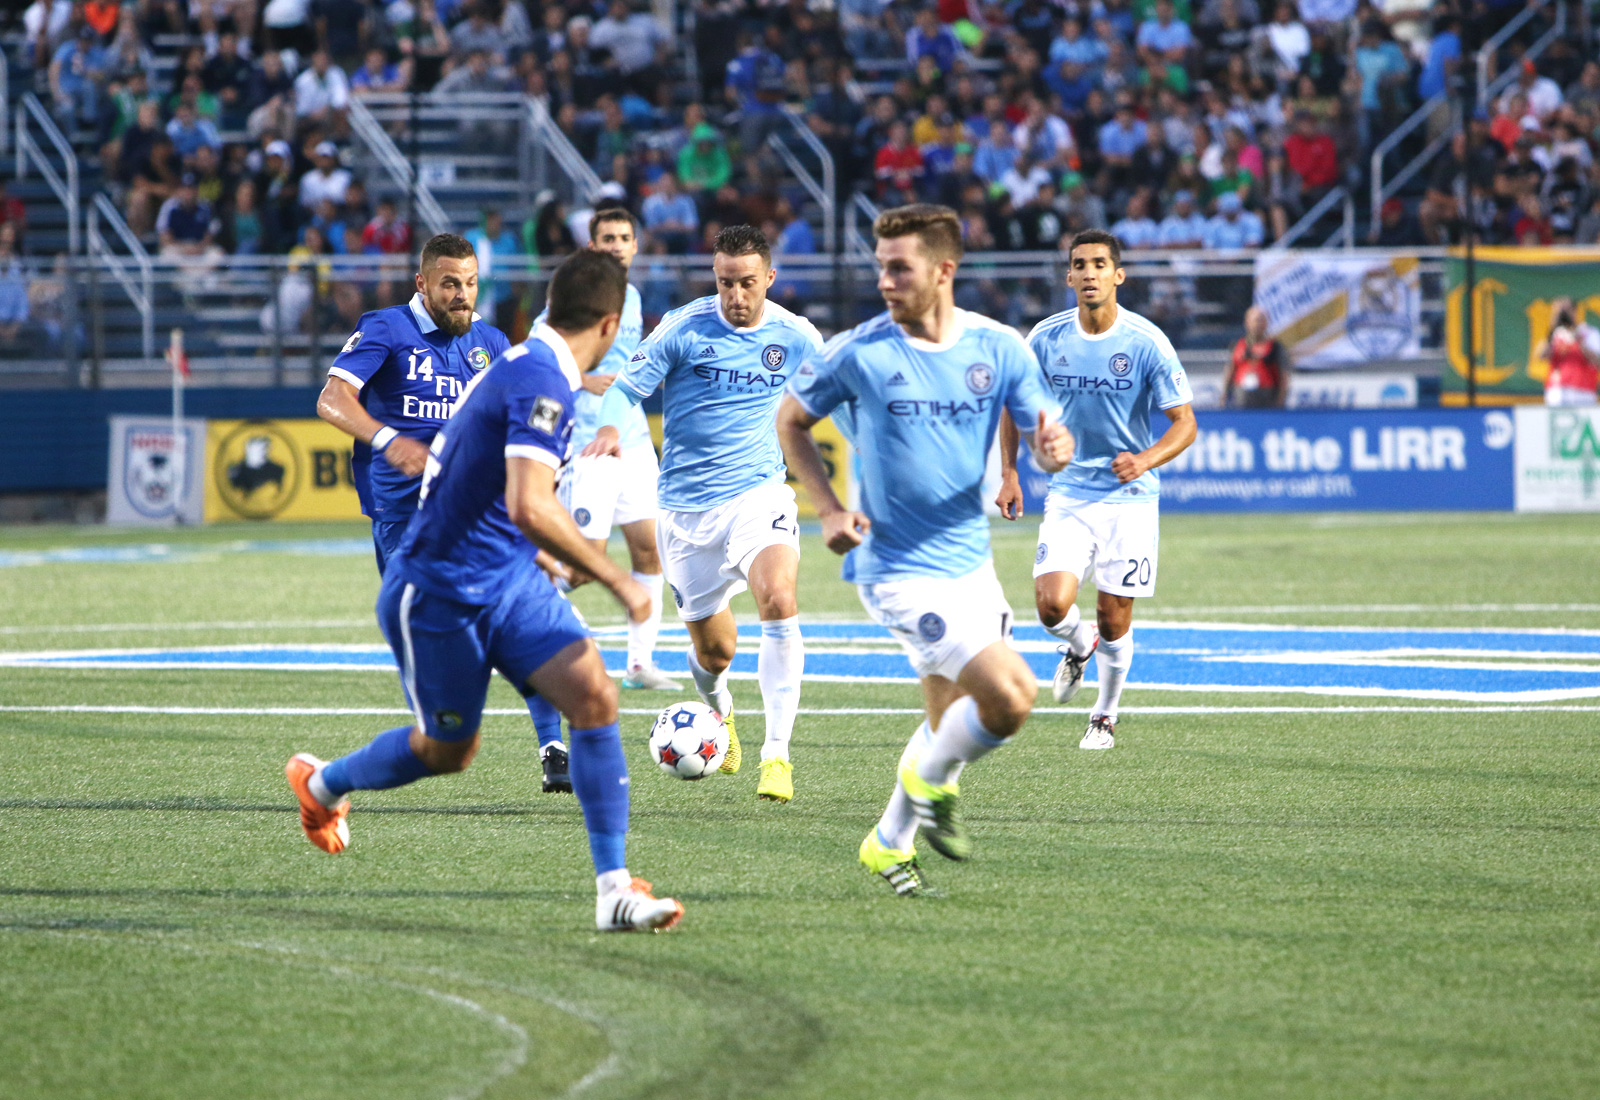 NYCFC defender R.J. Allen pushes the ball across midfield surrounded by a trio of teammates and two Cosmos defenders during the first half of their U.S. Open Cup fourth-round match